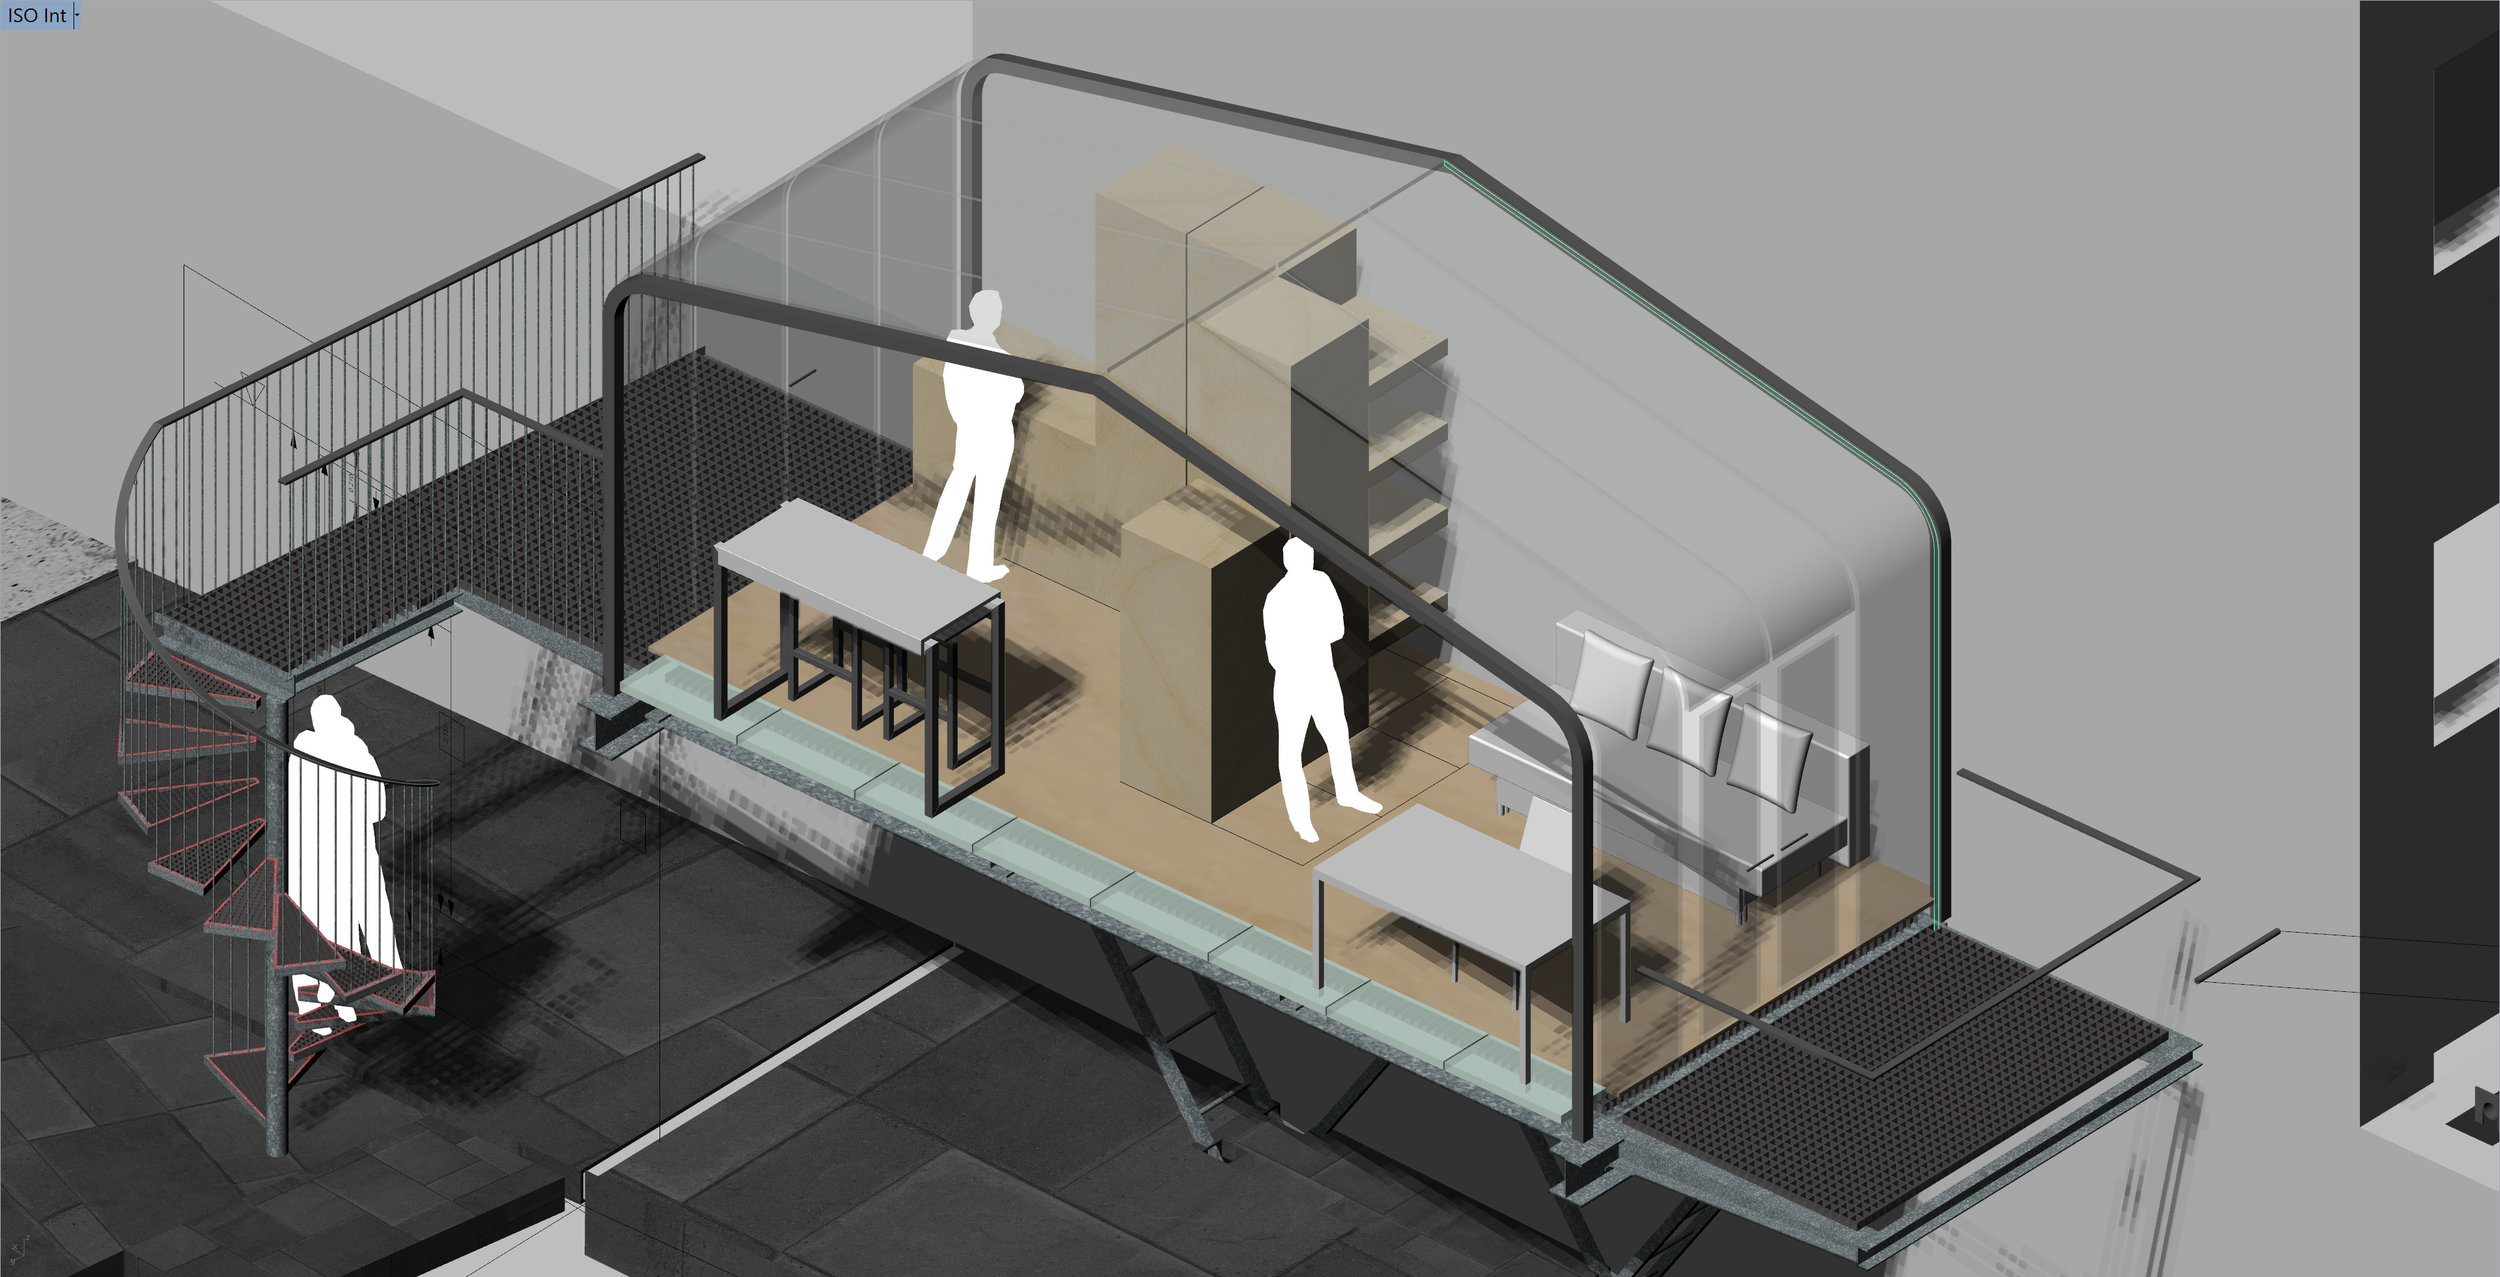 The internal layout was designed to allow for flexible configurations, using bespoke modular furniture